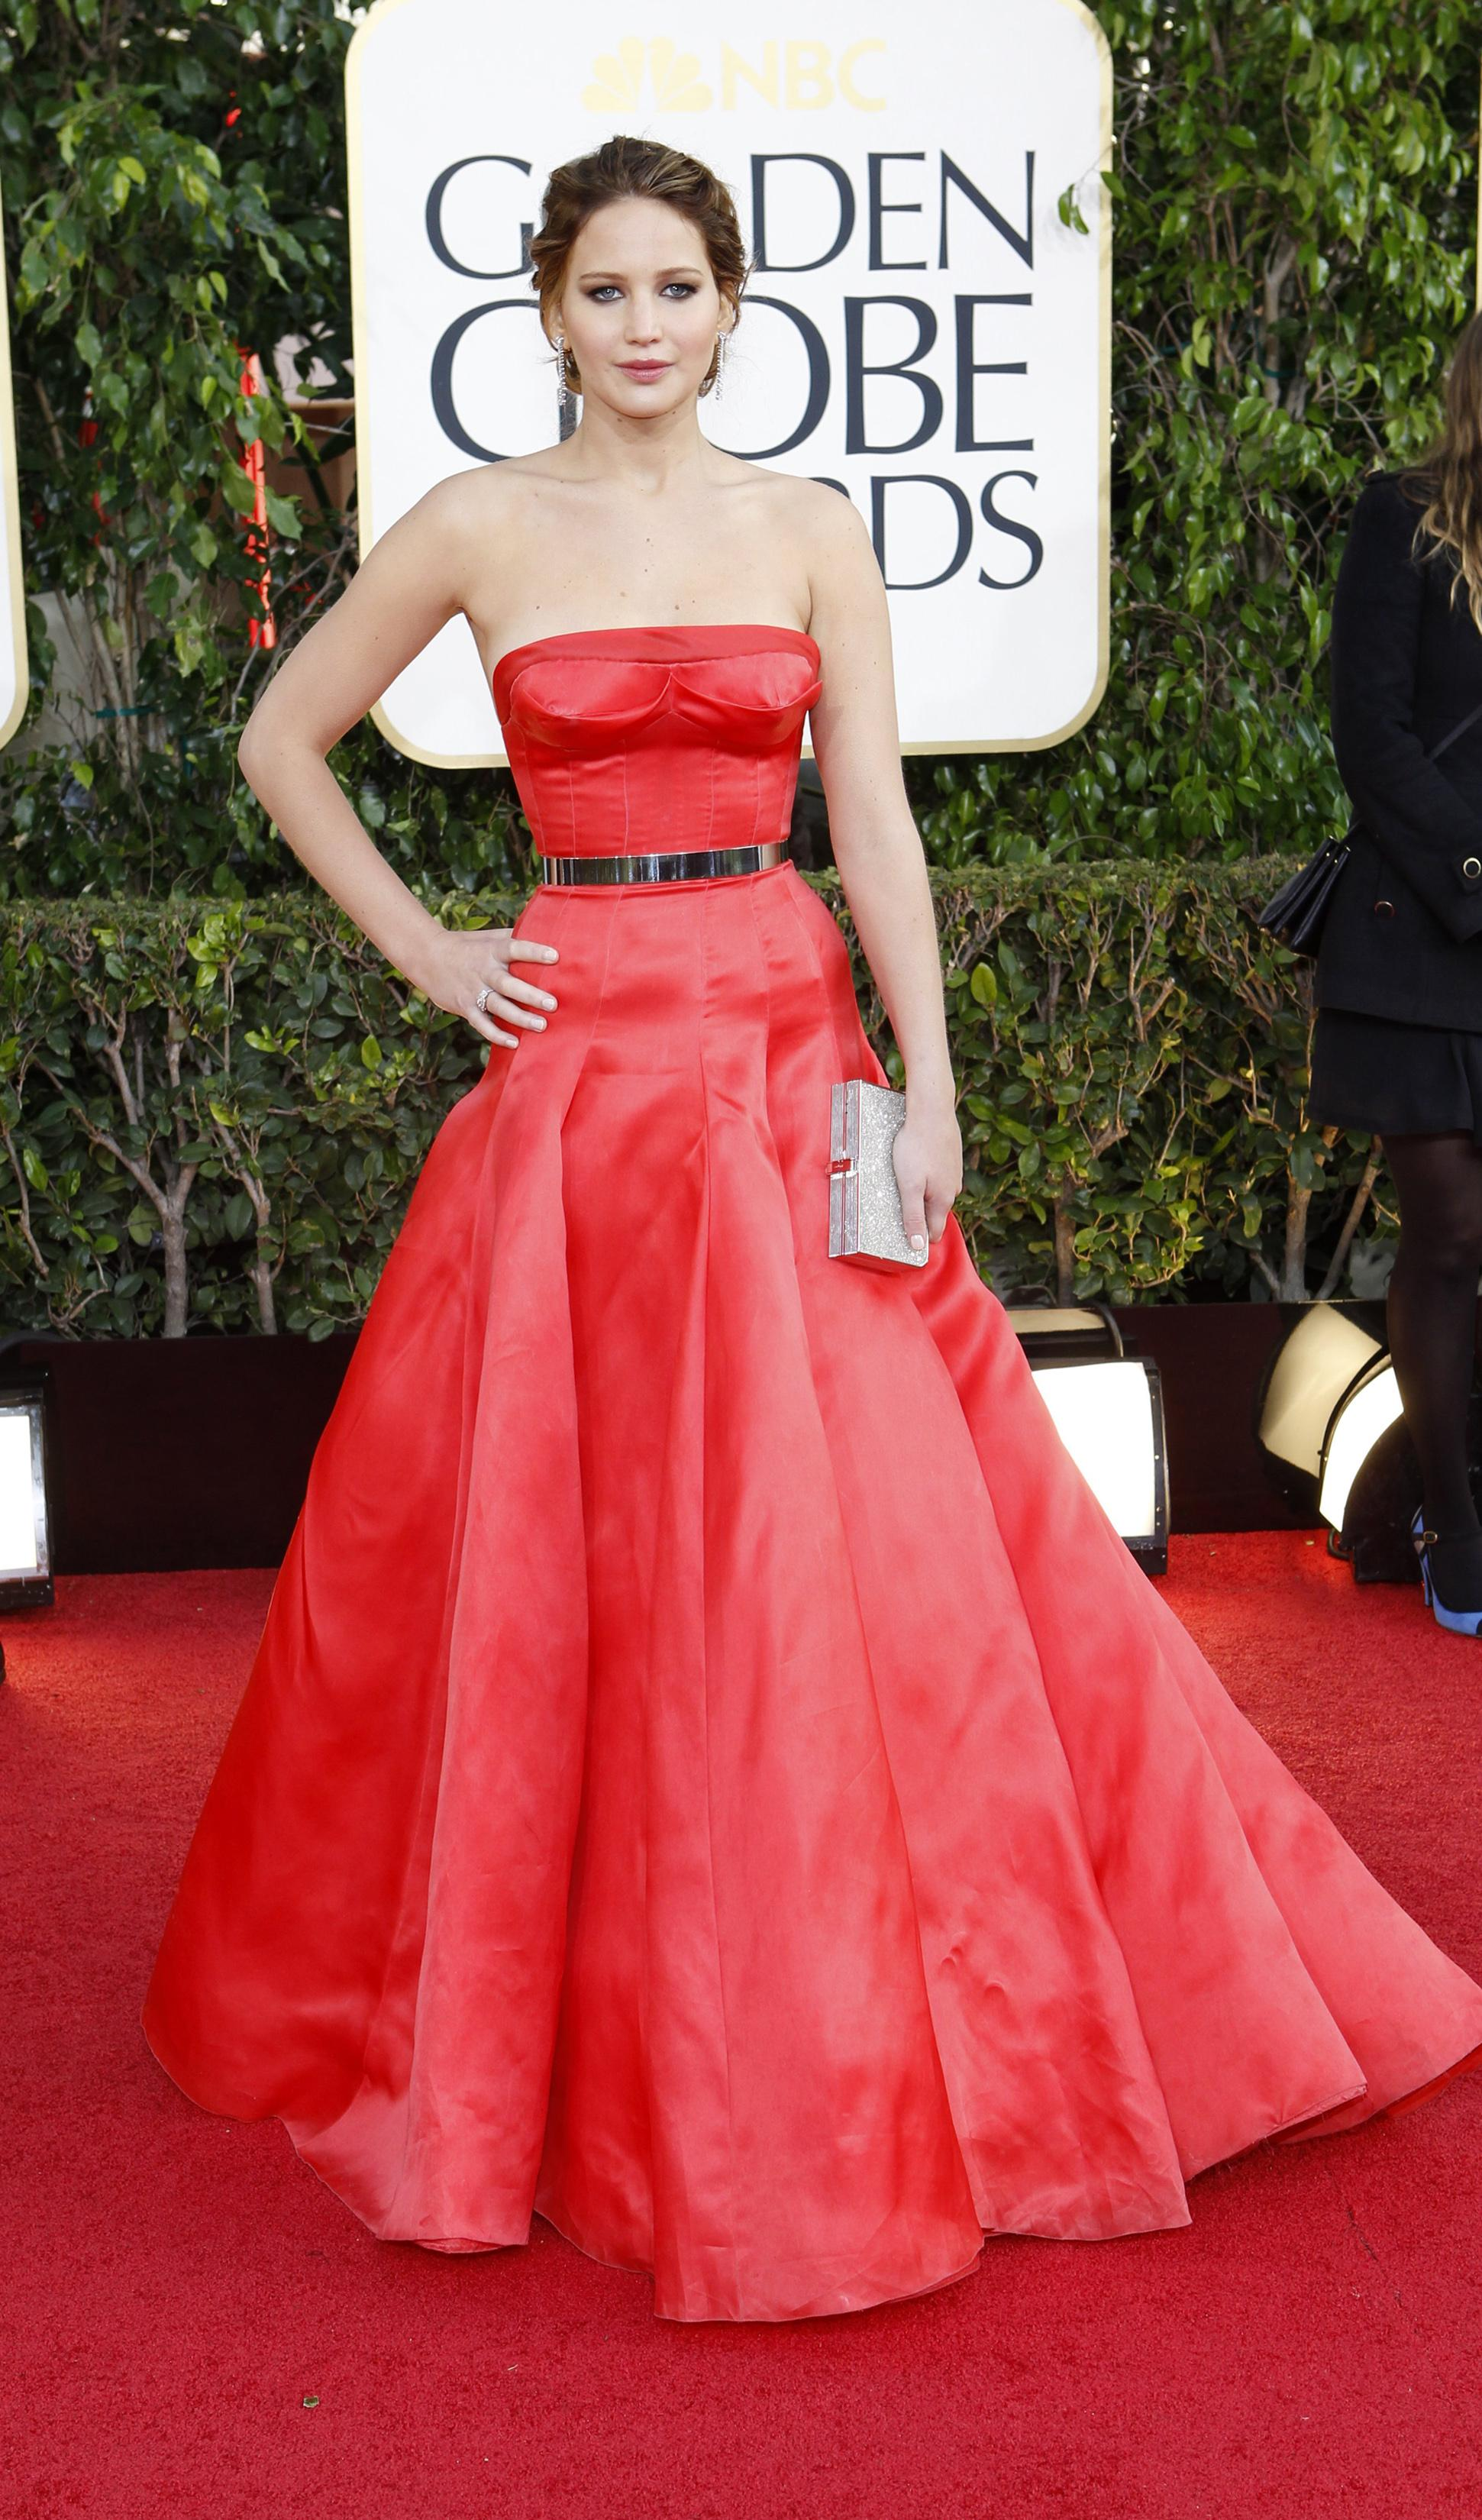 cfe03be7 Golden Globes 2013: Best And Worst Dressed Celebrities On The Red ...